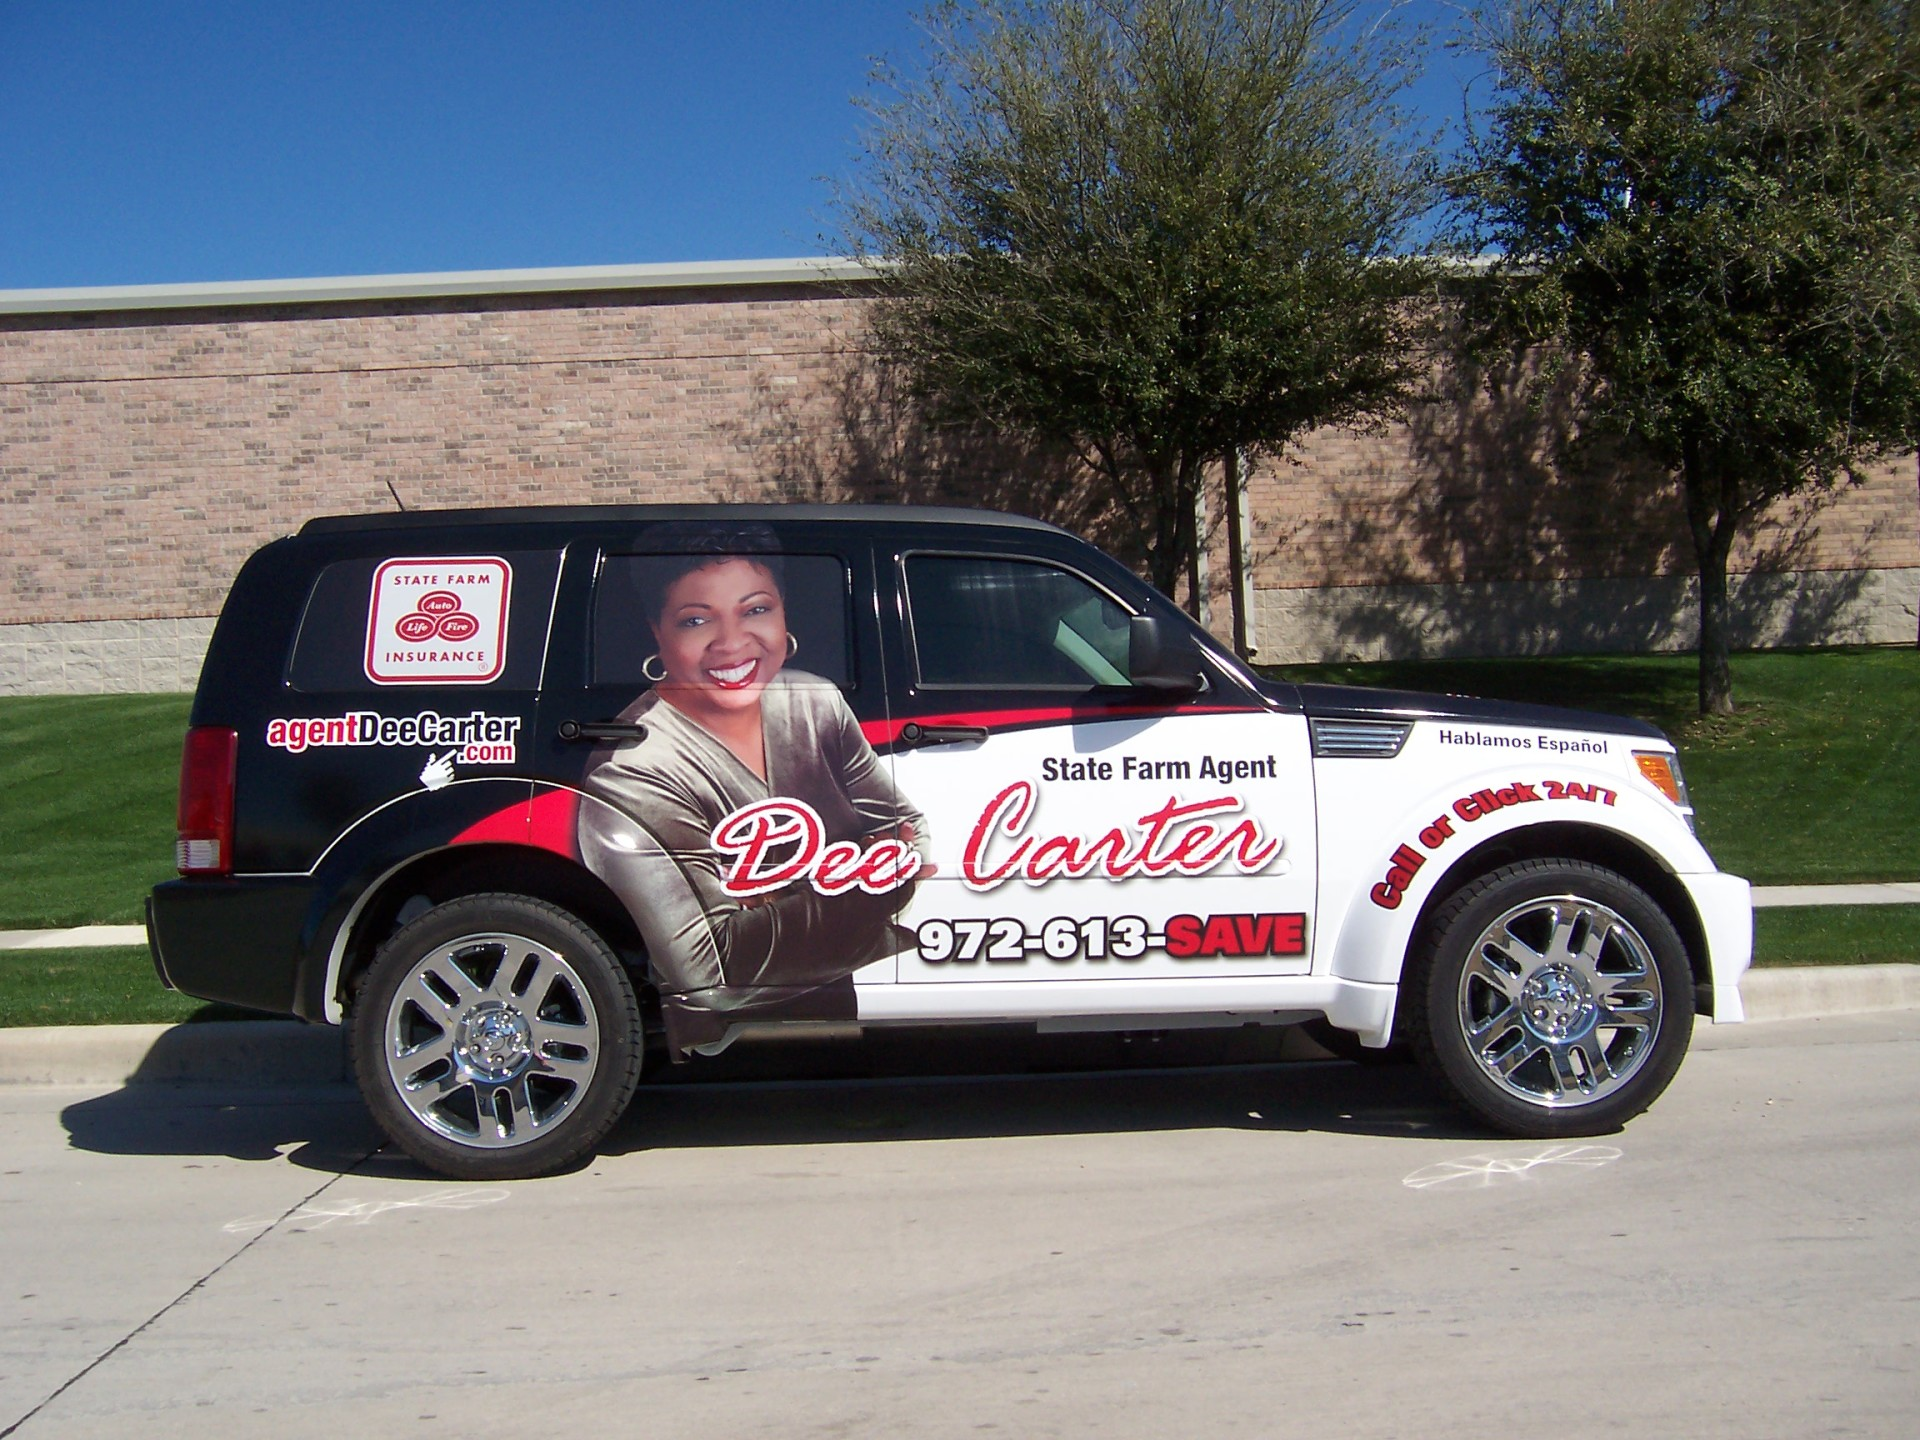 State Farm Agent Dee Carter, State Farm Vehicle wraps, vehicle wrap dallas tx